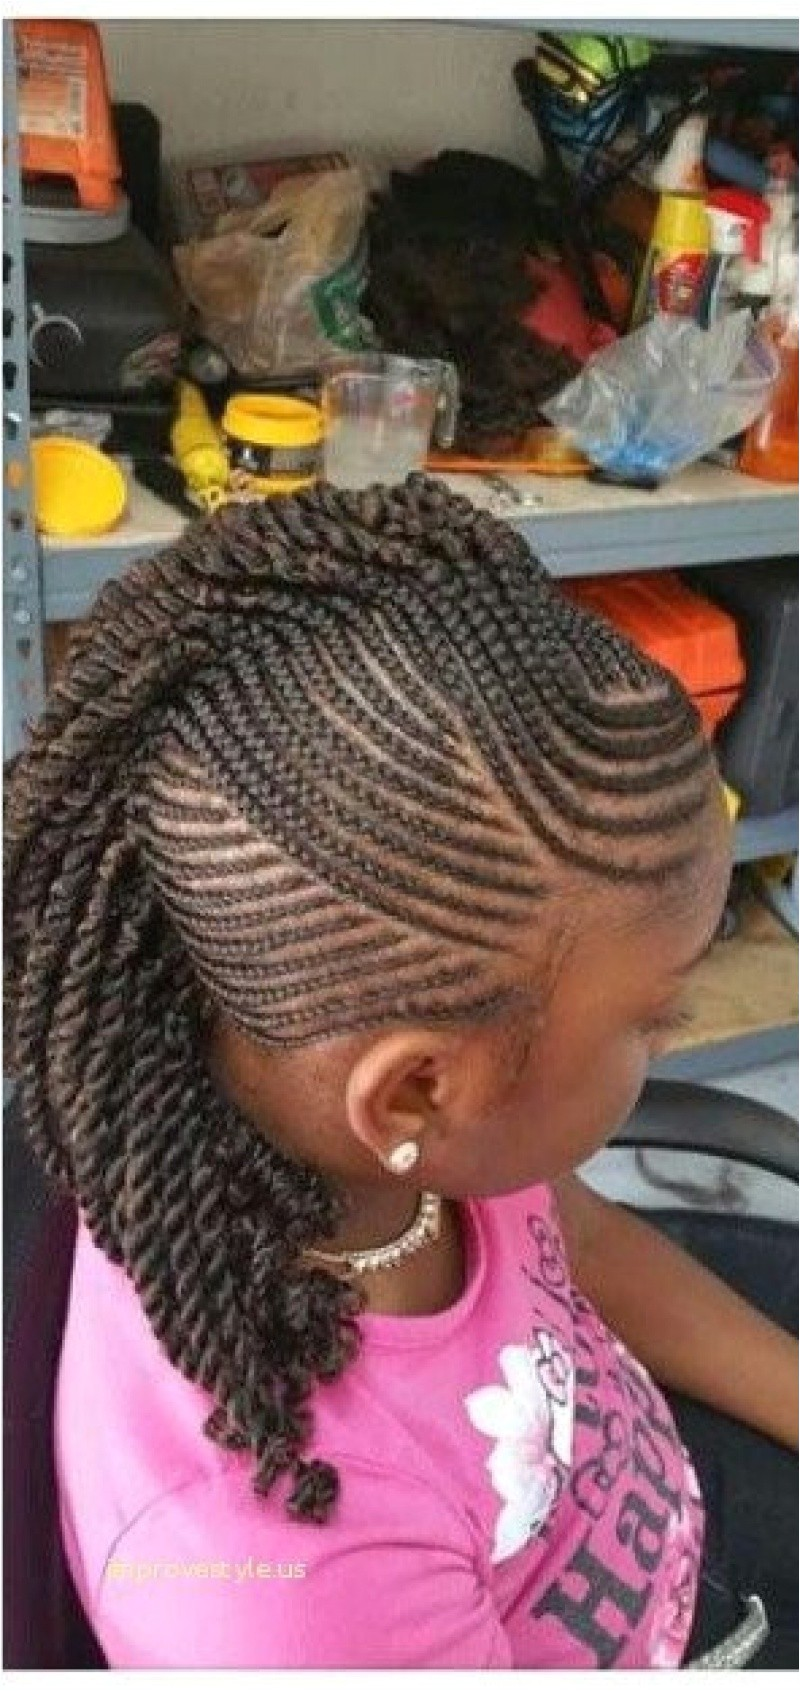 Braids for Long Hair s Mohawk Hairstyles with Braids Awesome Braided Mohawk Hairstyles 0d Collection